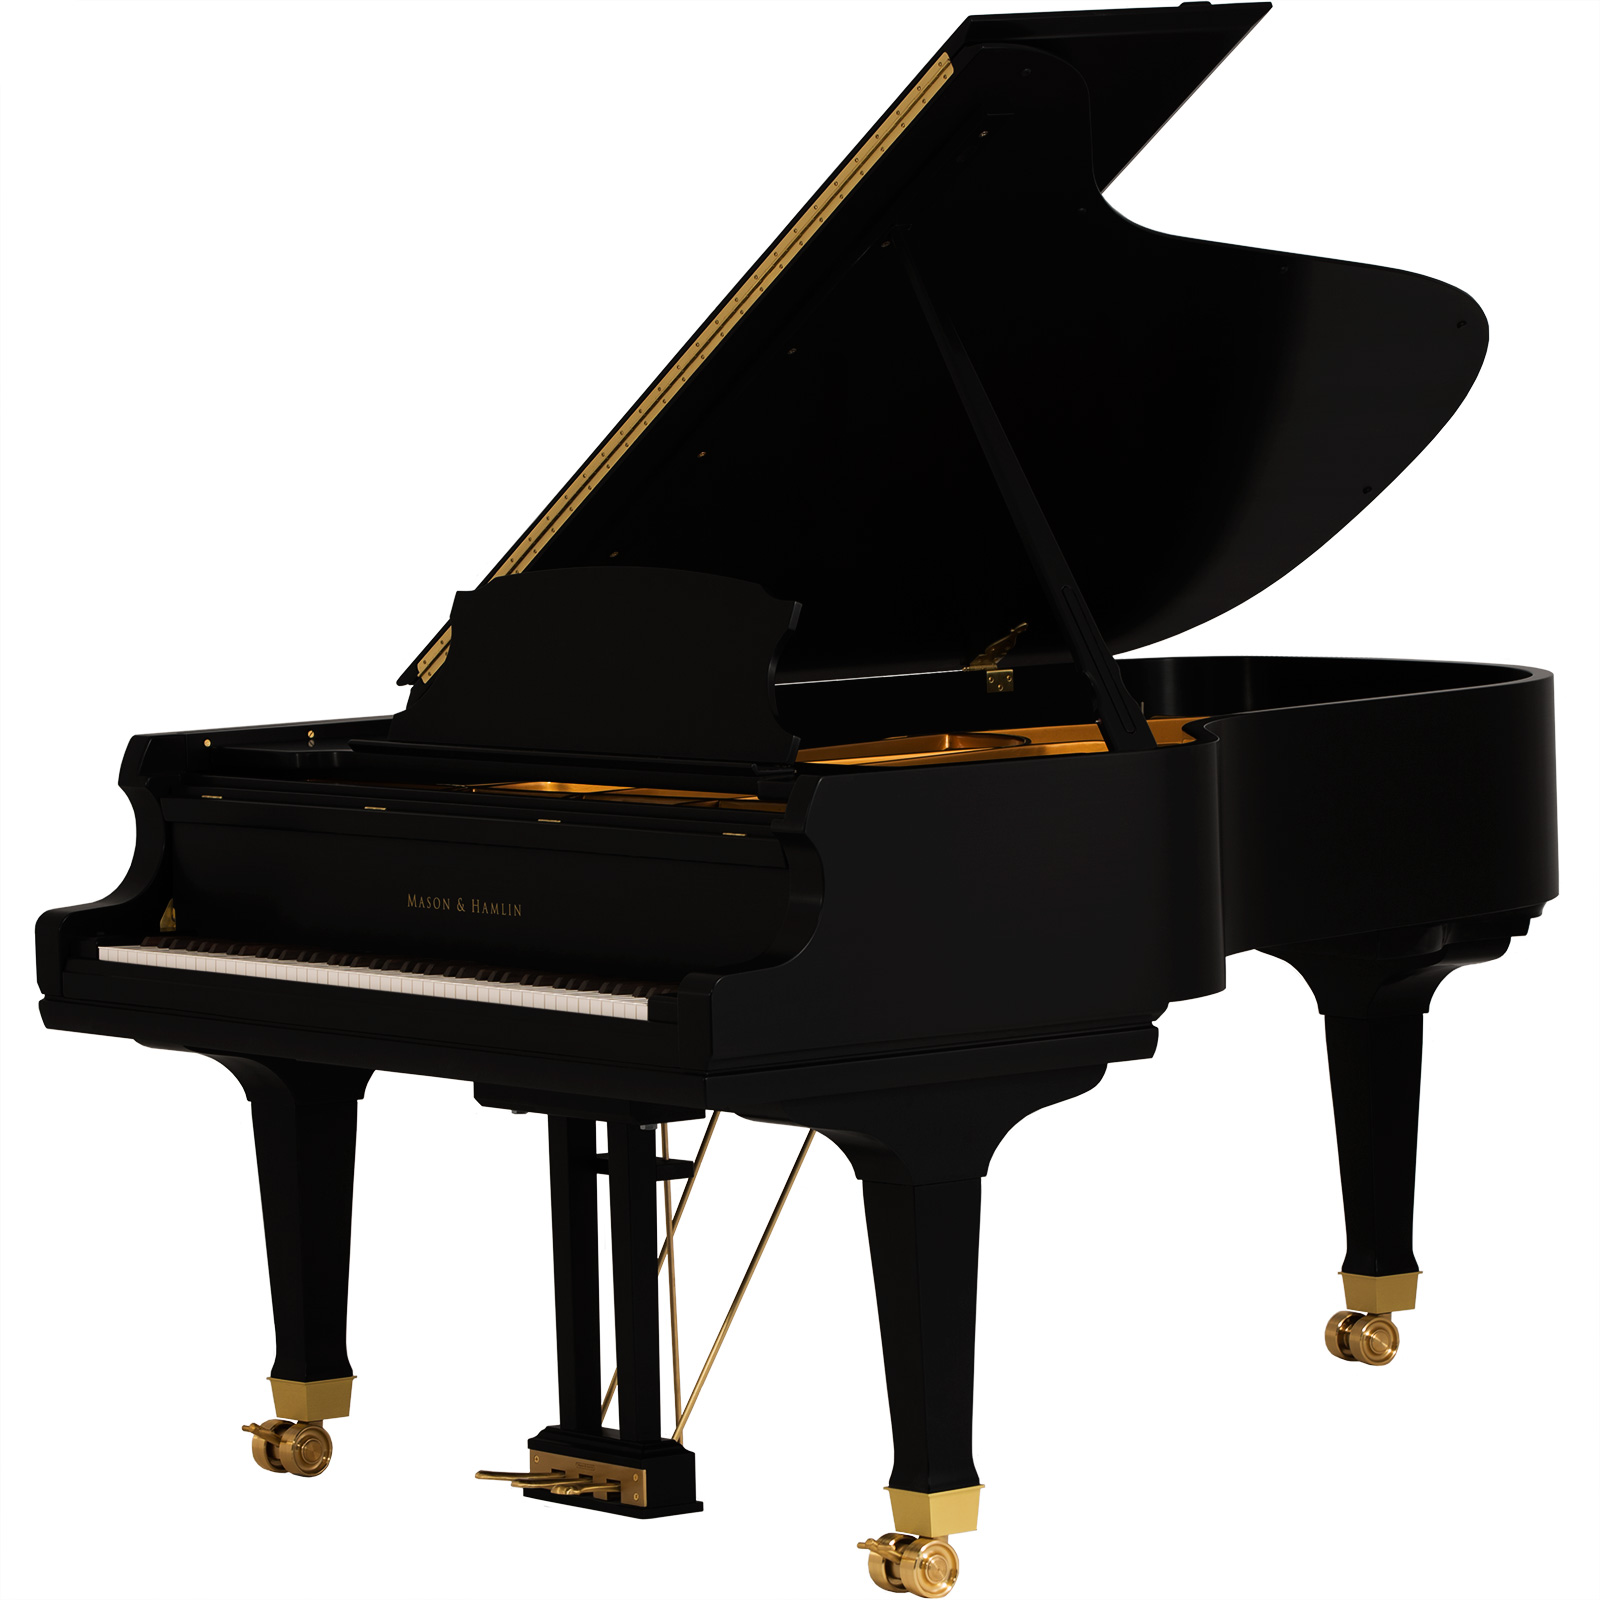 Mason & Hamlin Model BB Grand Piano